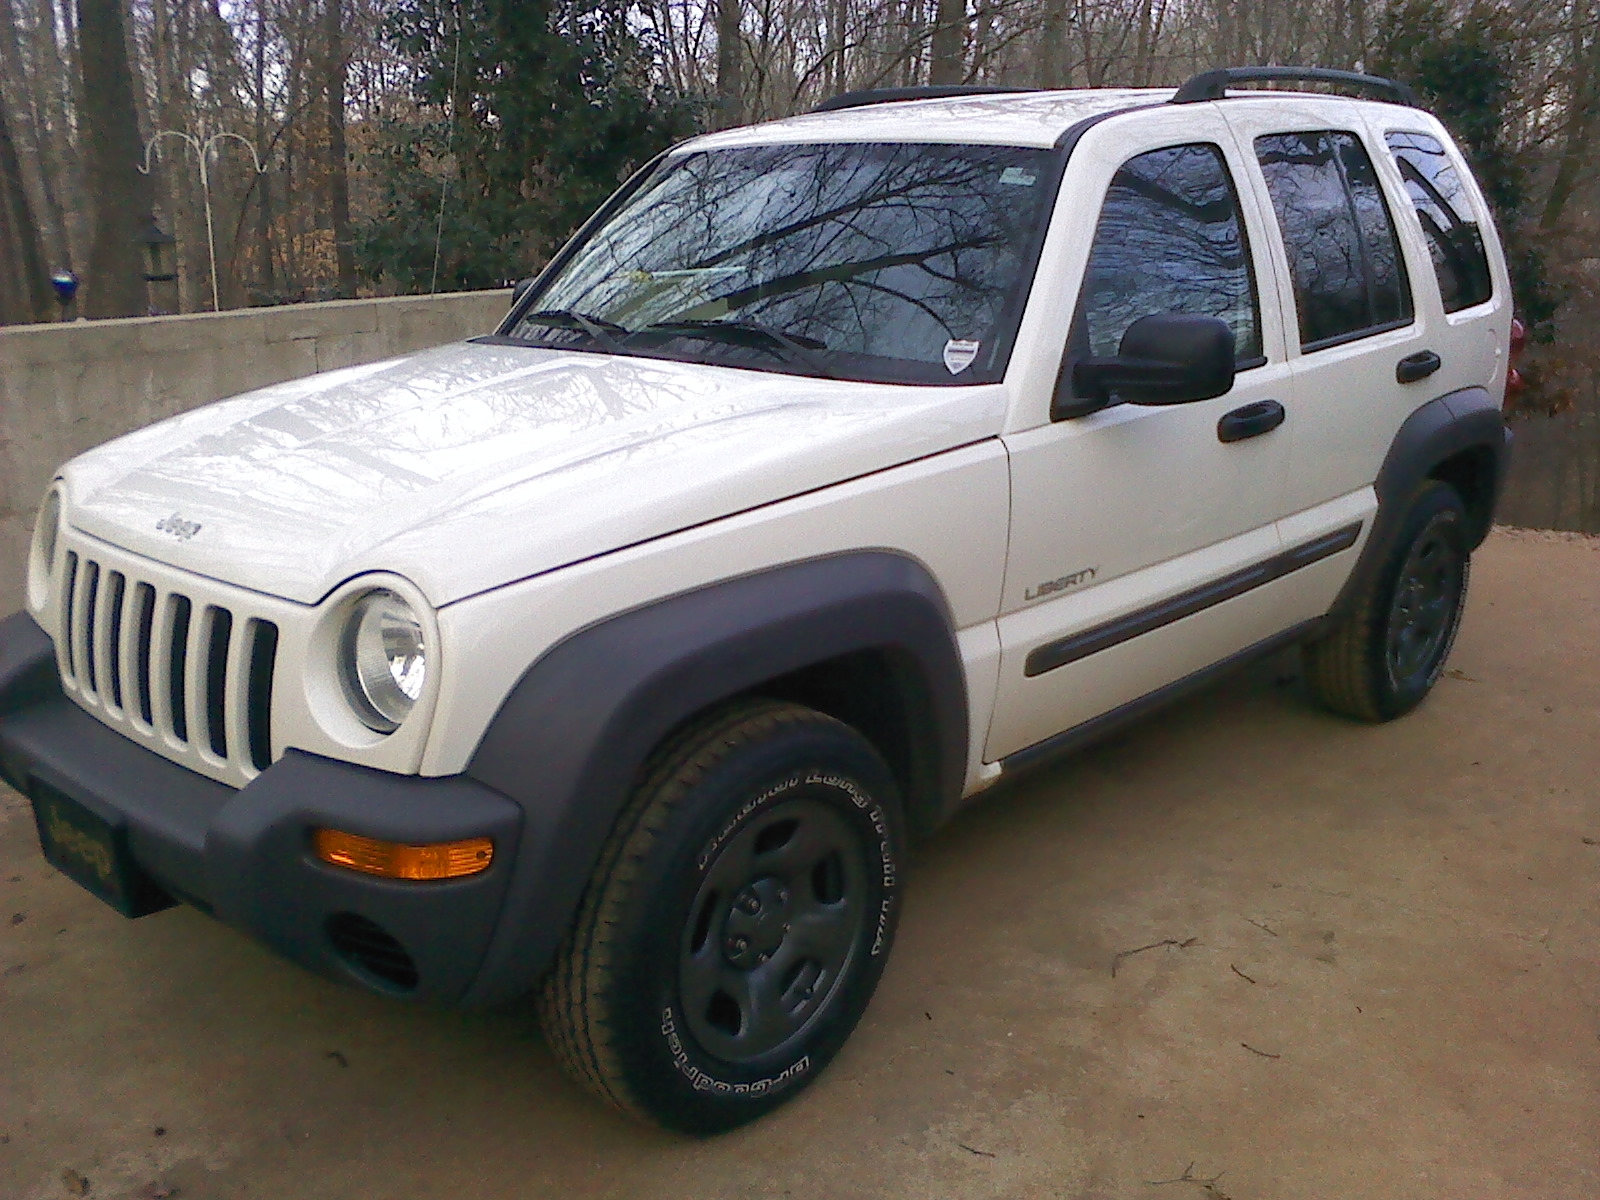 tumbleweed18 39 s 2004 jeep liberty limited edition sport utility 4d page 3 in fair play sc. Black Bedroom Furniture Sets. Home Design Ideas